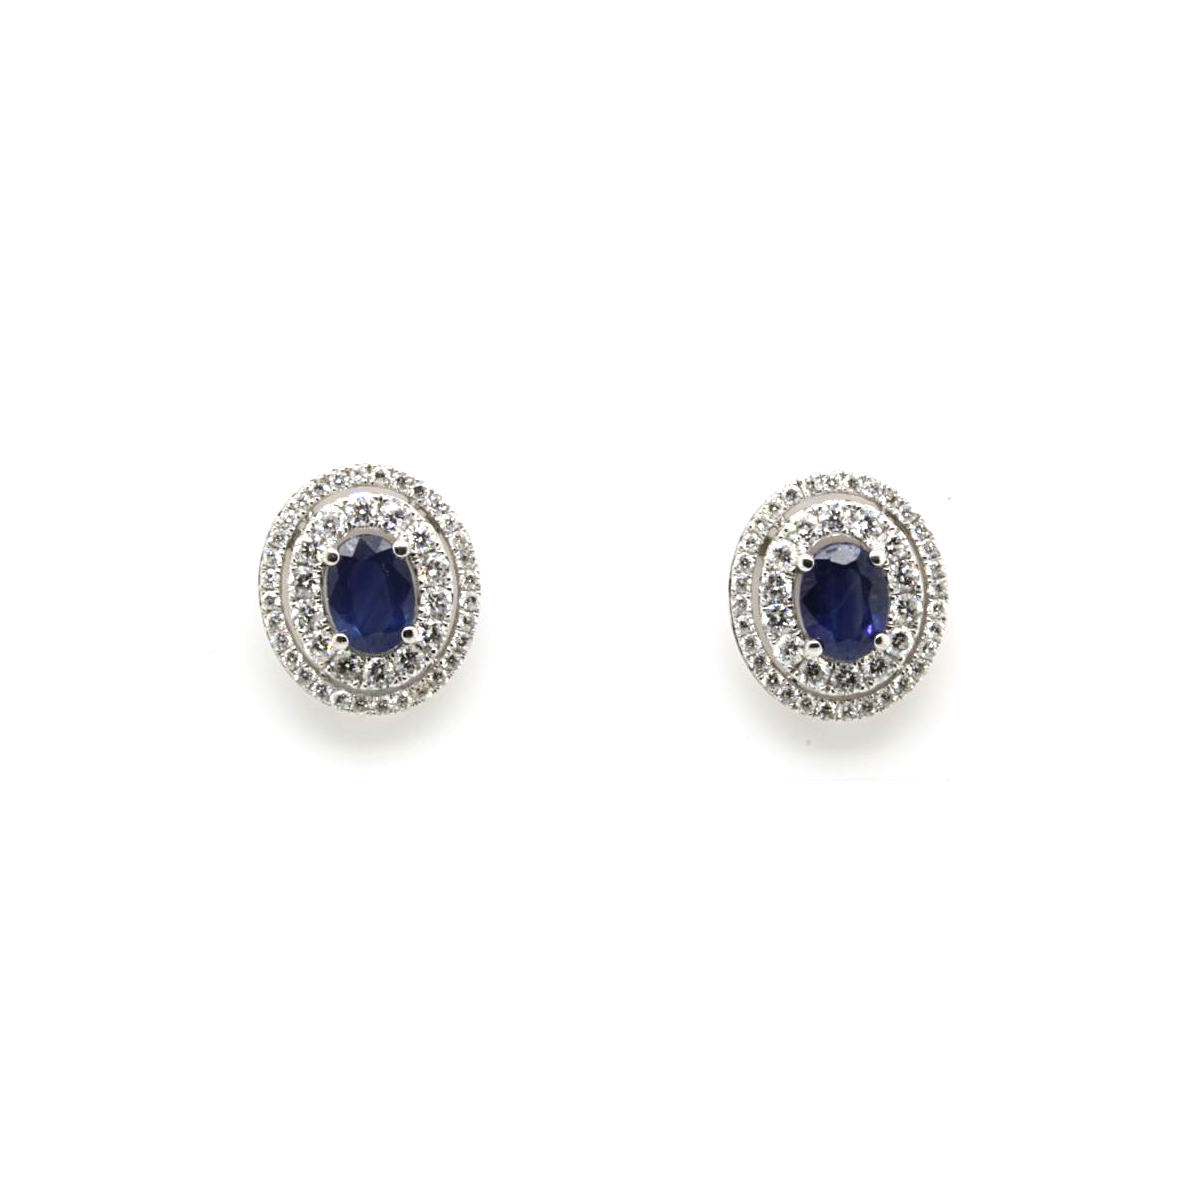 14 Karat White Gold Oval Blue Sapphire and Diamond Earrings